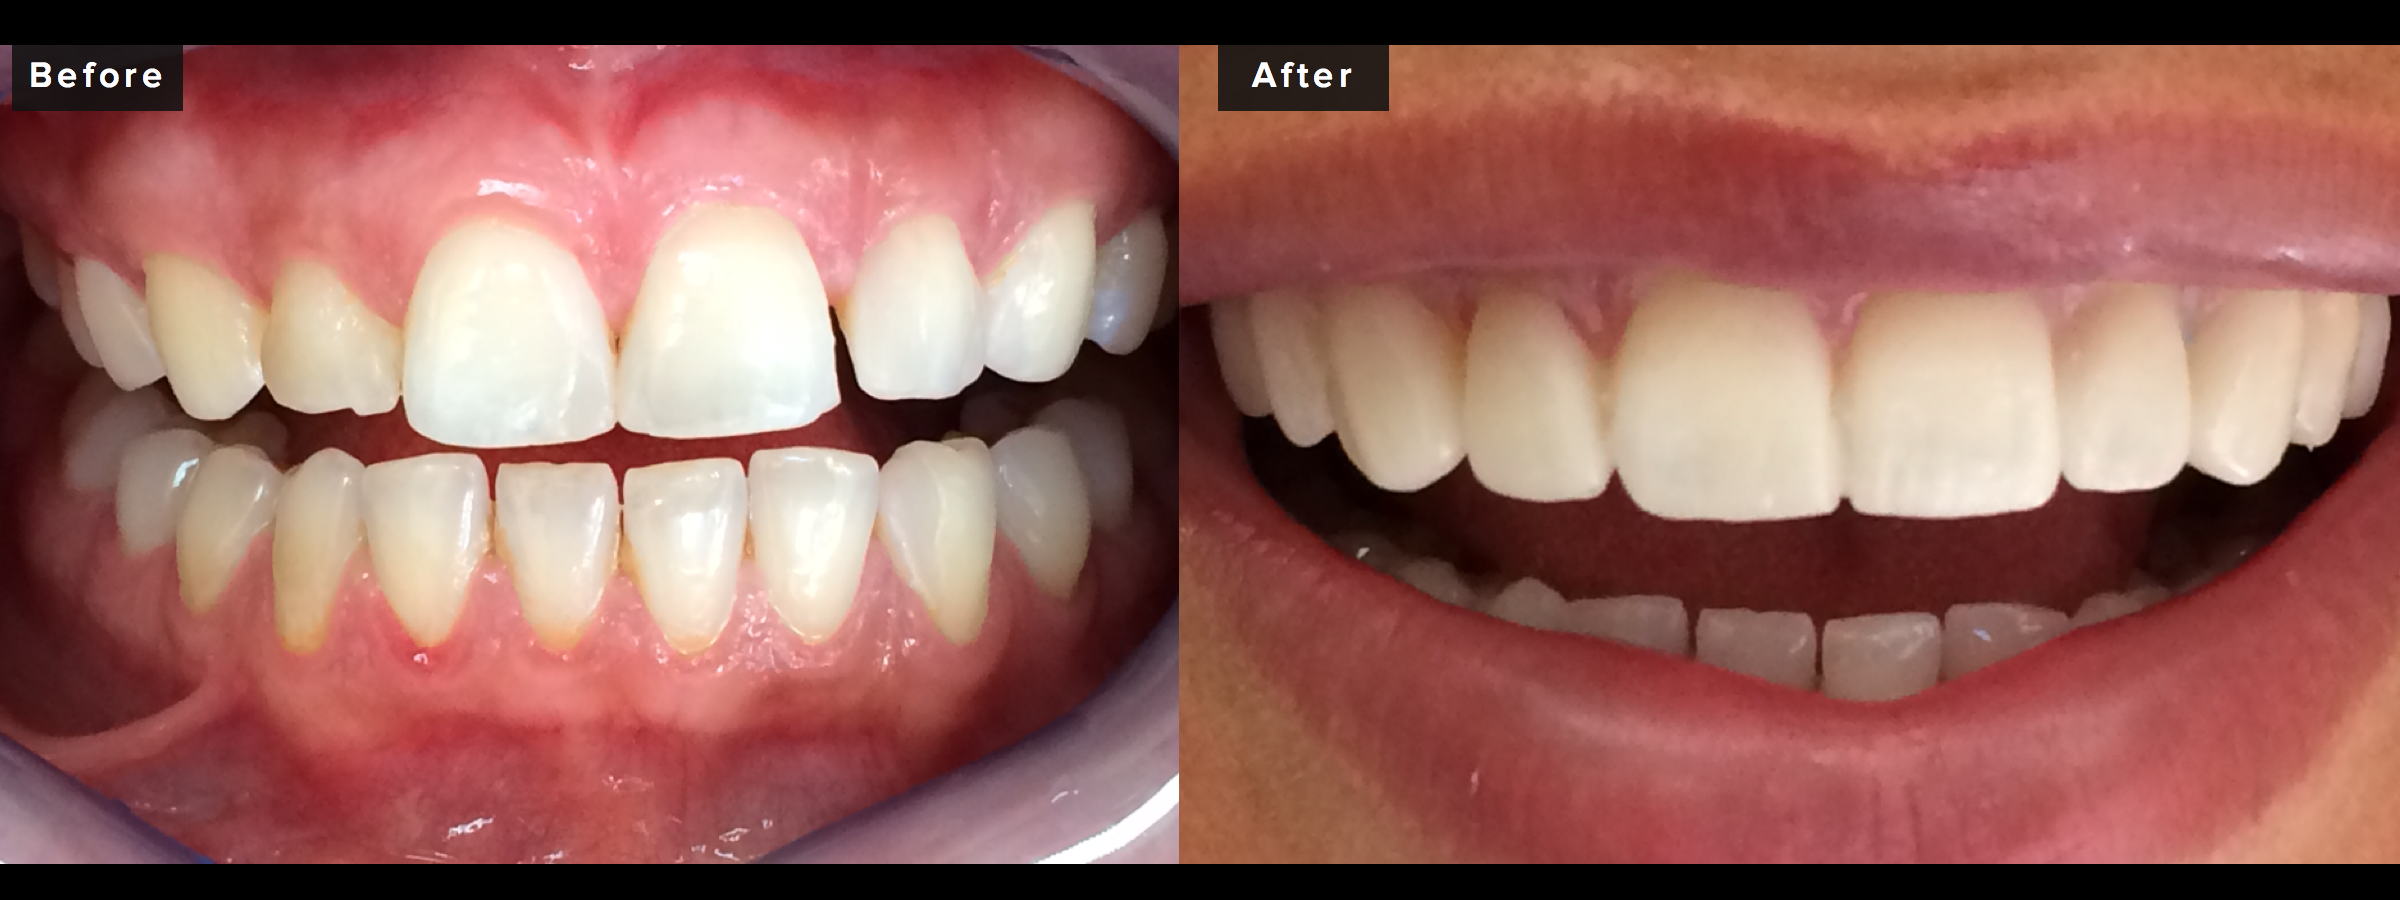 This case is an example of some of the initial diagnostic work that we can do that allows us to properly record all aspects of a patient's smile and bite. We have done all preparatory records for this patient and have worked everything up in wax in order to assess how the final result might look. We simply placed a template of the proposed final result over top of her existing teeth and utilized a flowable temporary material to provide a direct look at what things could look like. This took ten minutes of chair time and the patient was able to wear it home to spend some time assessing things and to gain some valuable feedback from her family and friends. This mock-up peels off rather easily and no damage is done to the underlying teeth. A great way to test run both form and shade!